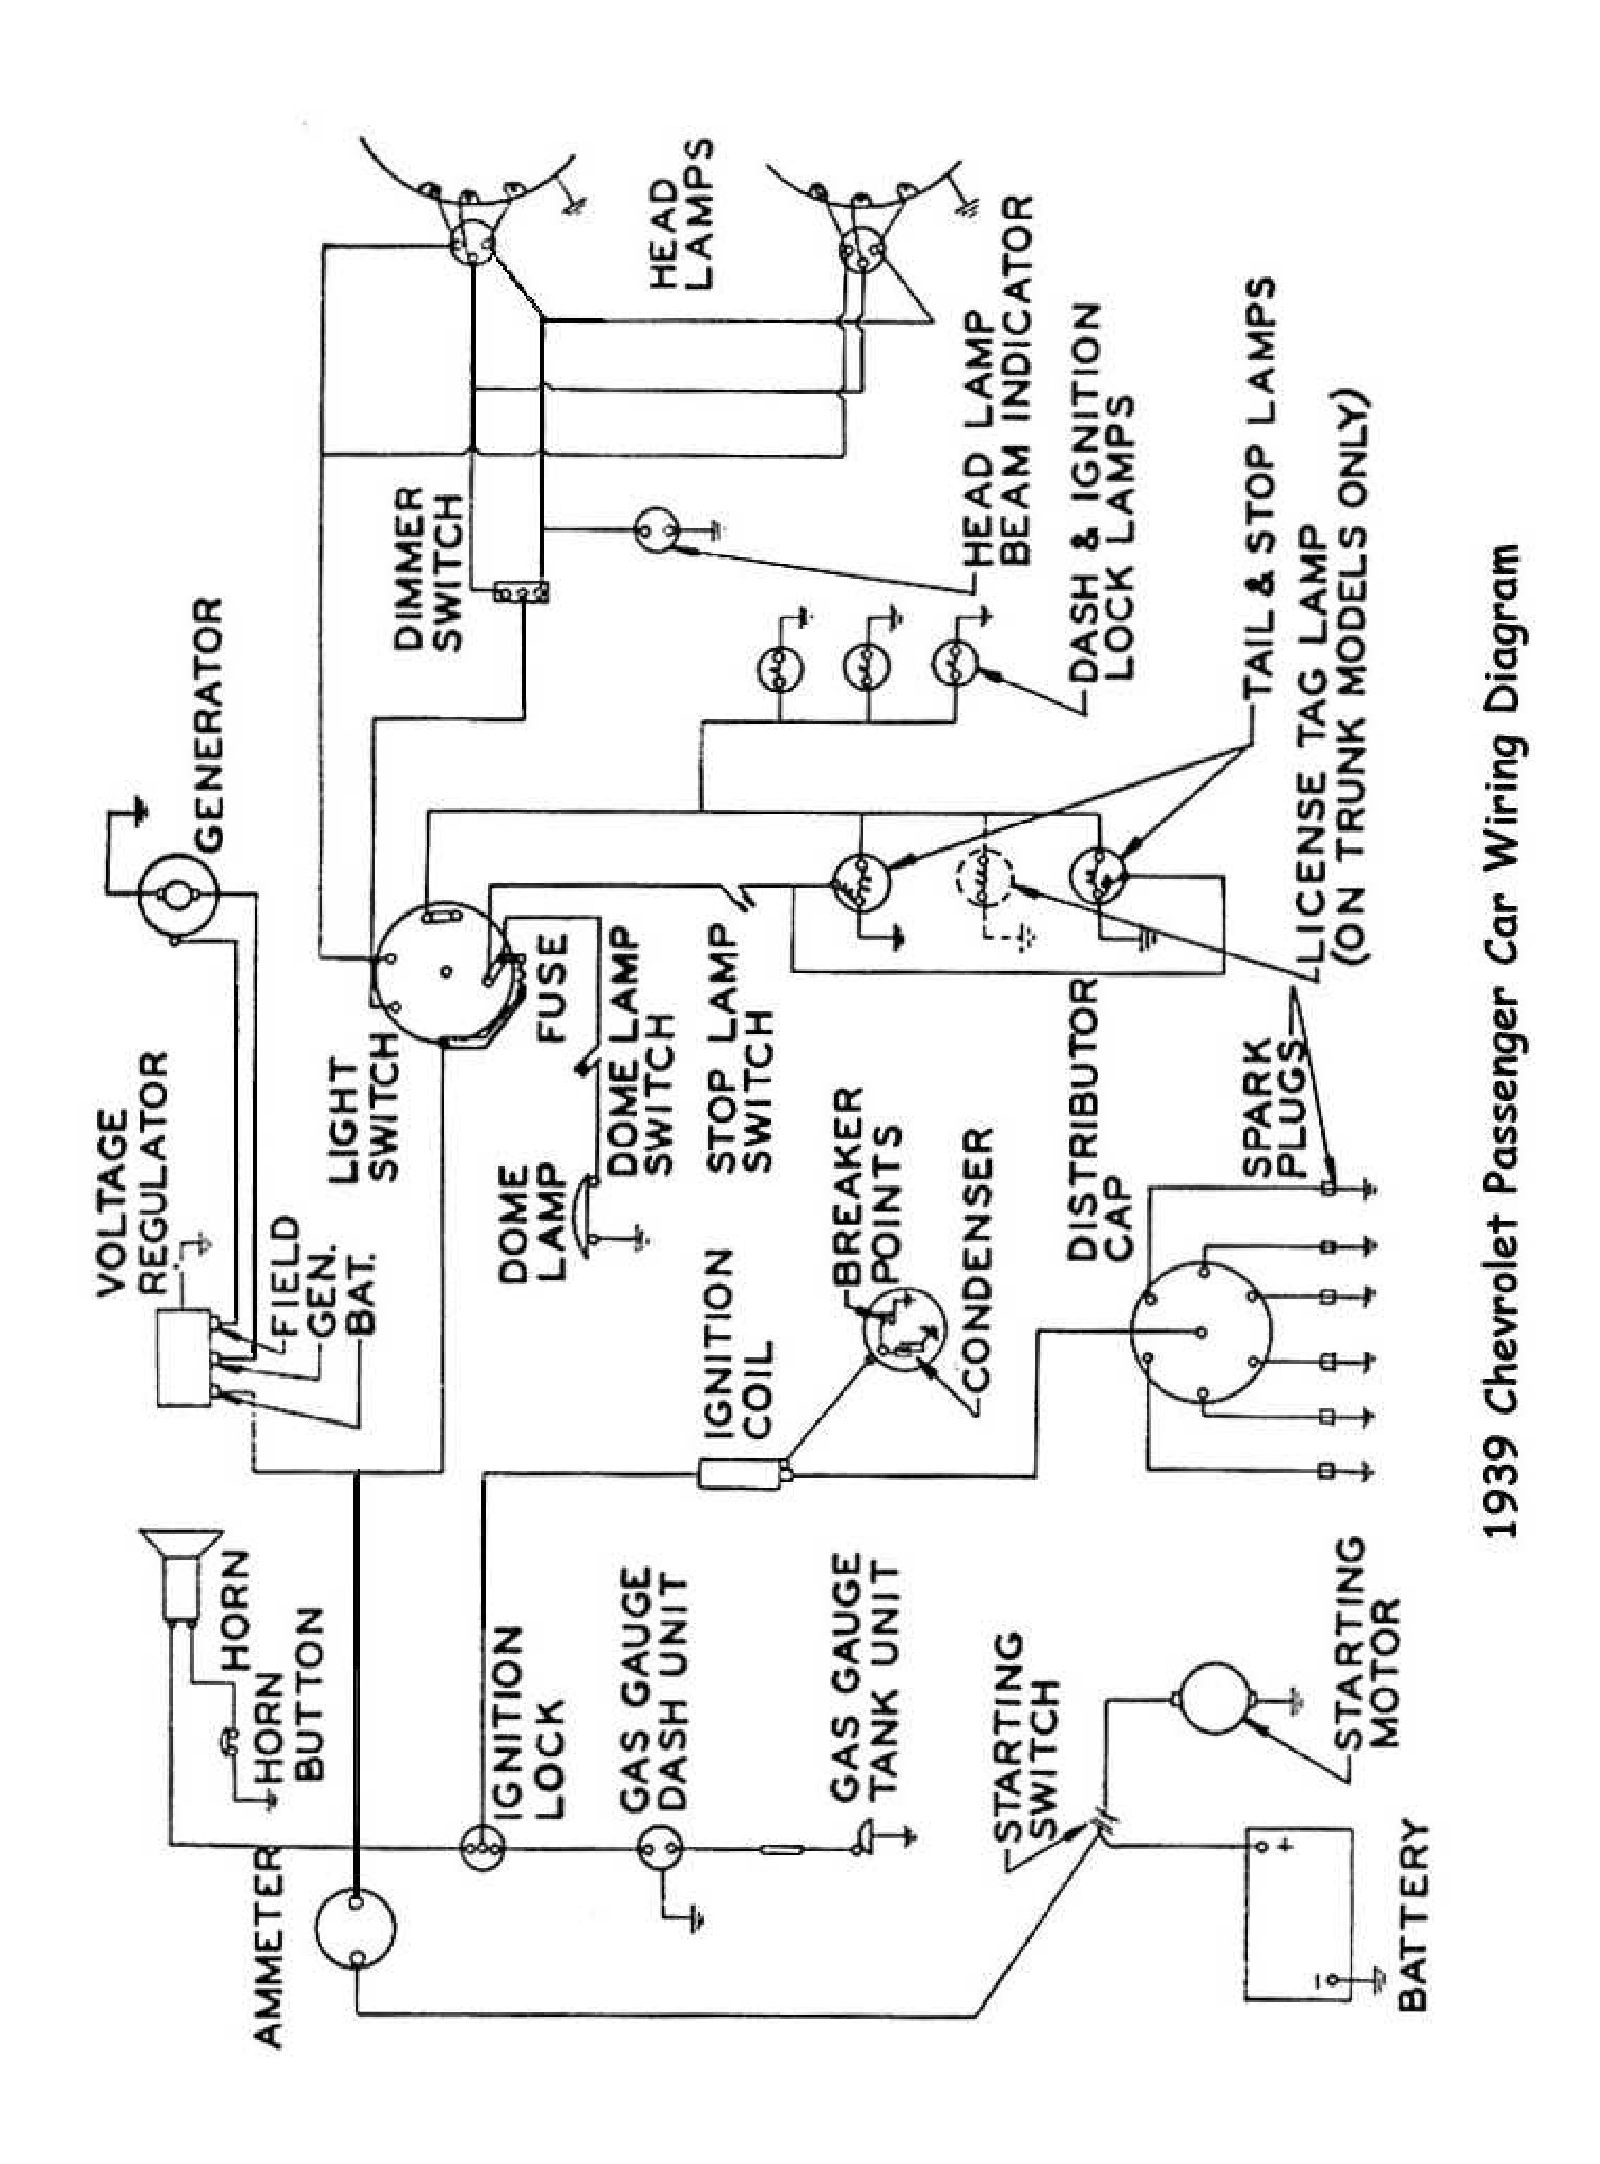 Wiring diagram in addition wiring diagram joz on wiring diagram rh dasdes co